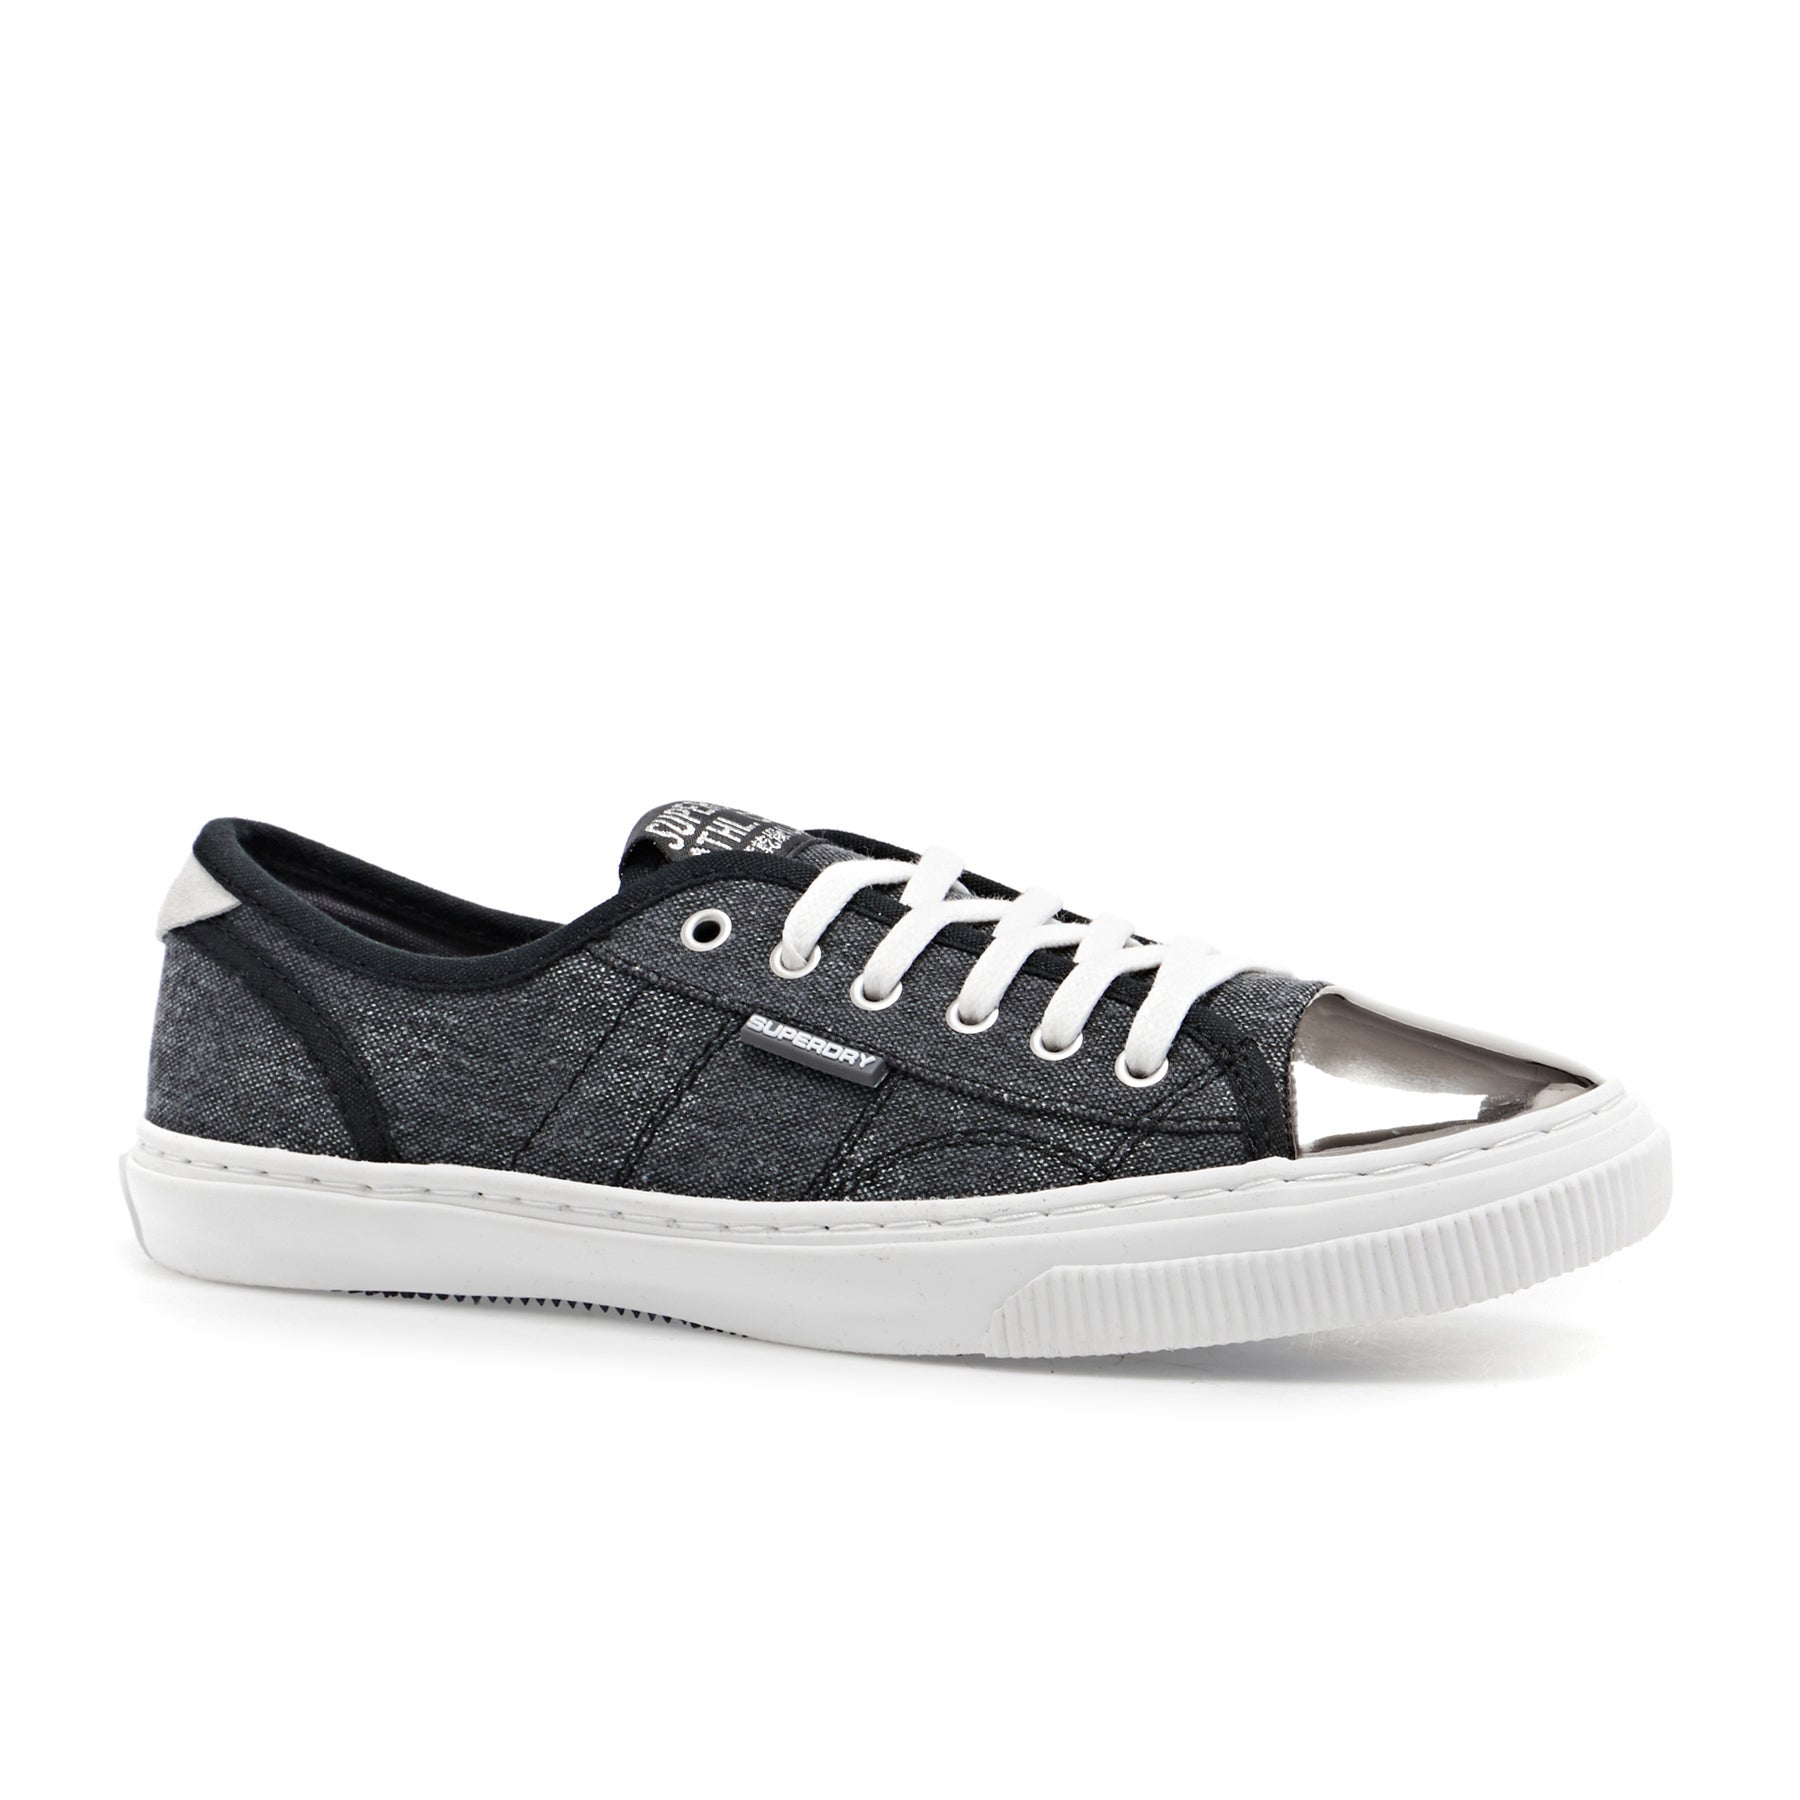 Chaussures Superdry Low Pro Luxe - Washed Black